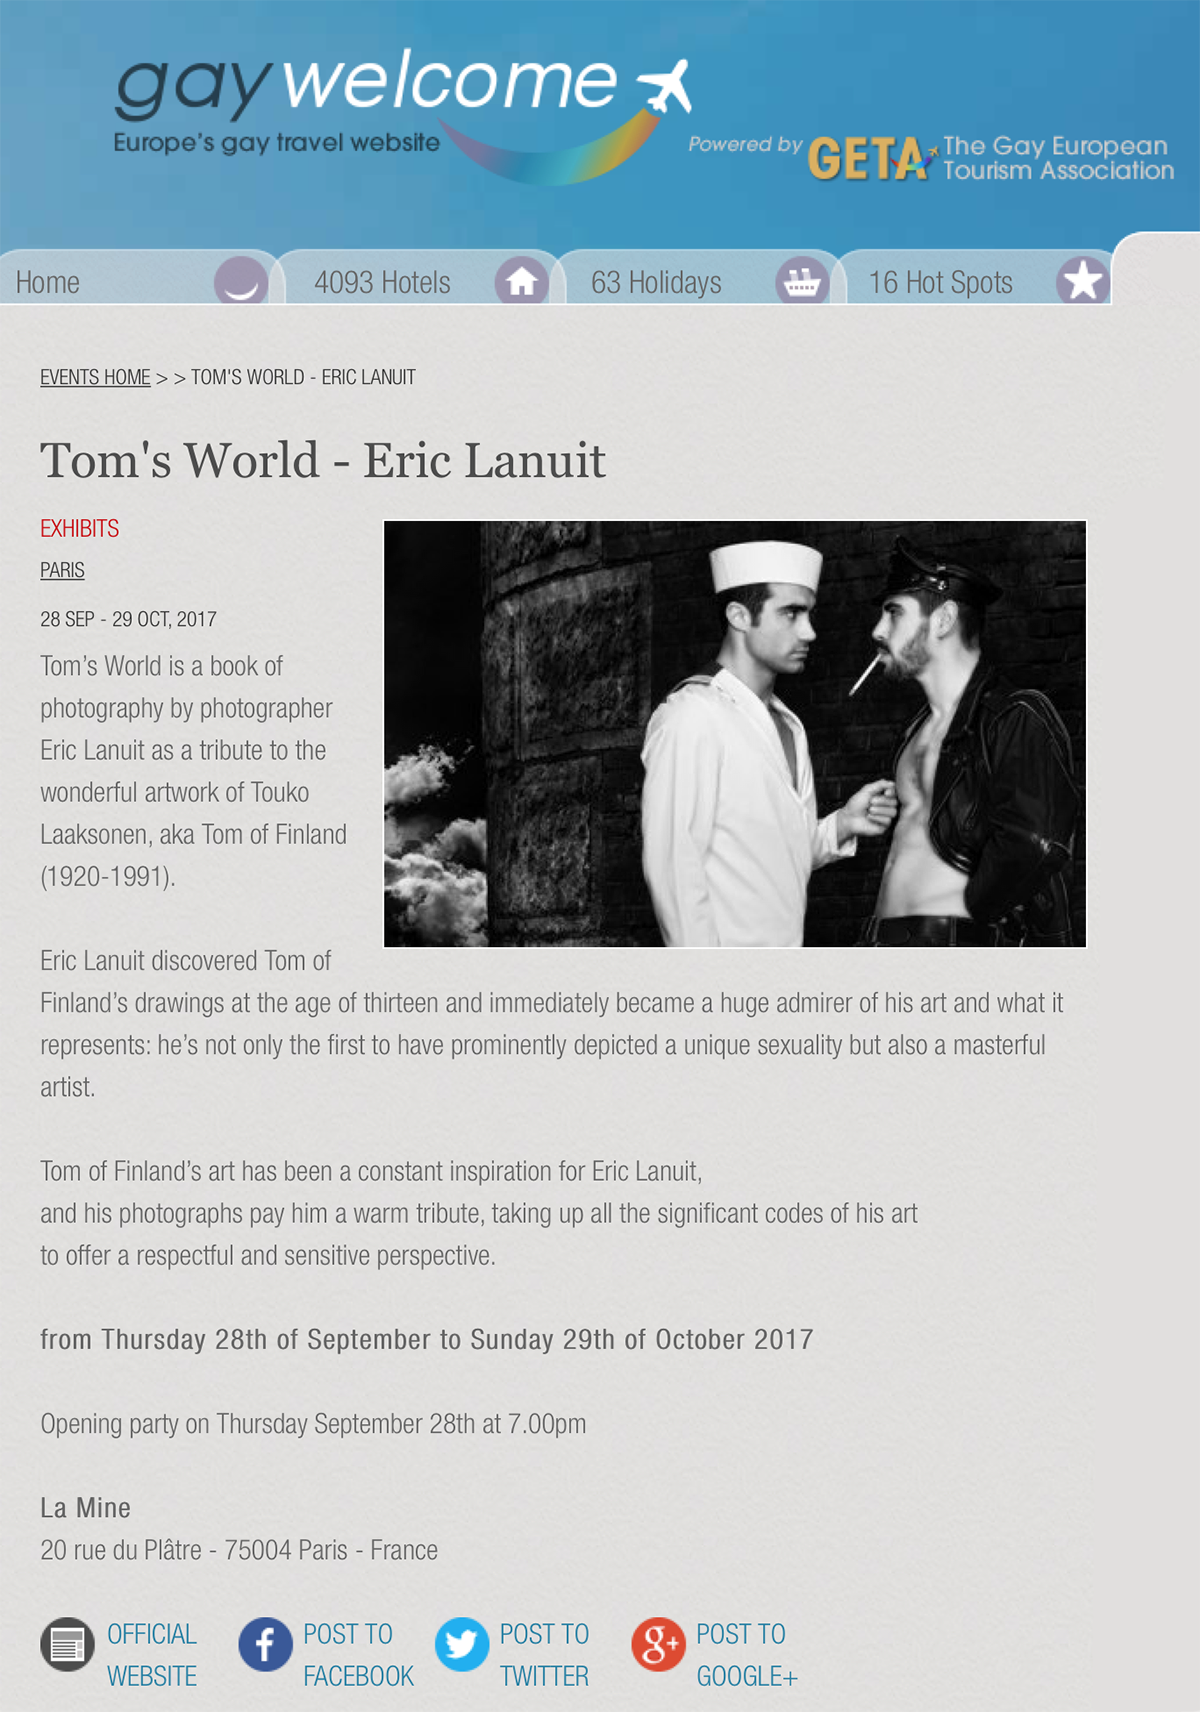 Gay Welcome 2 - Tom's World by Eric Lanuit